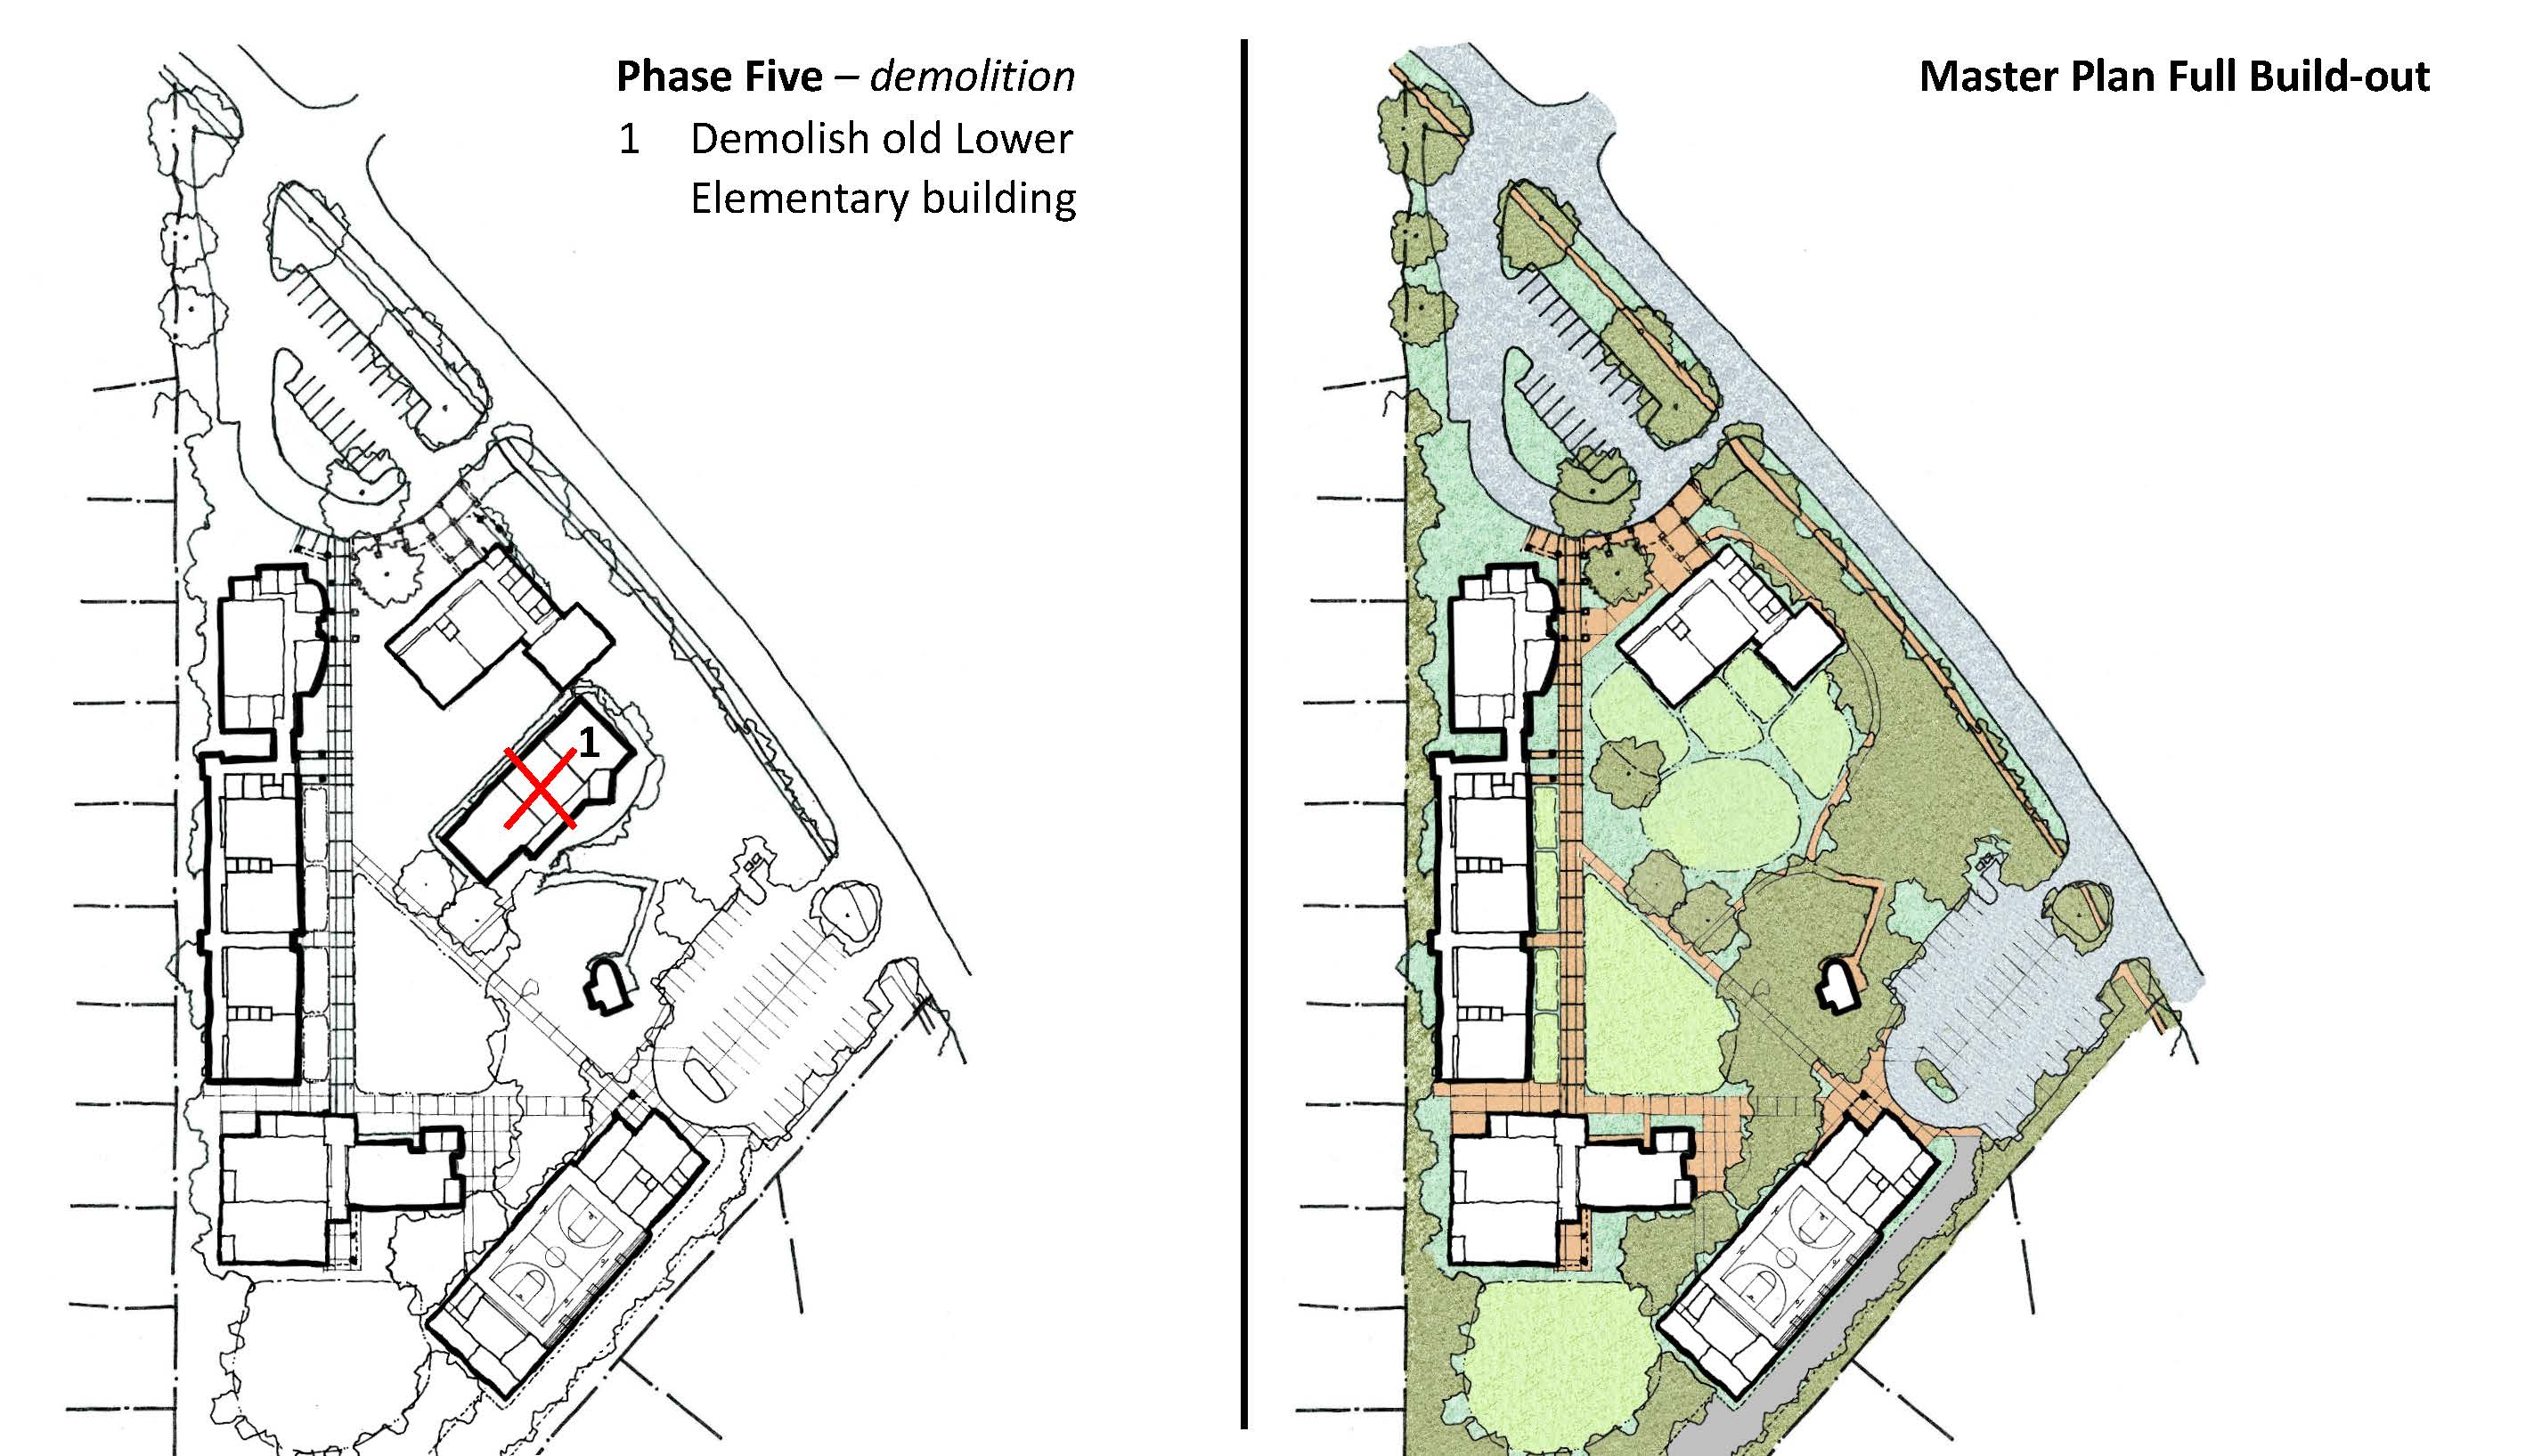 view the campus master plan